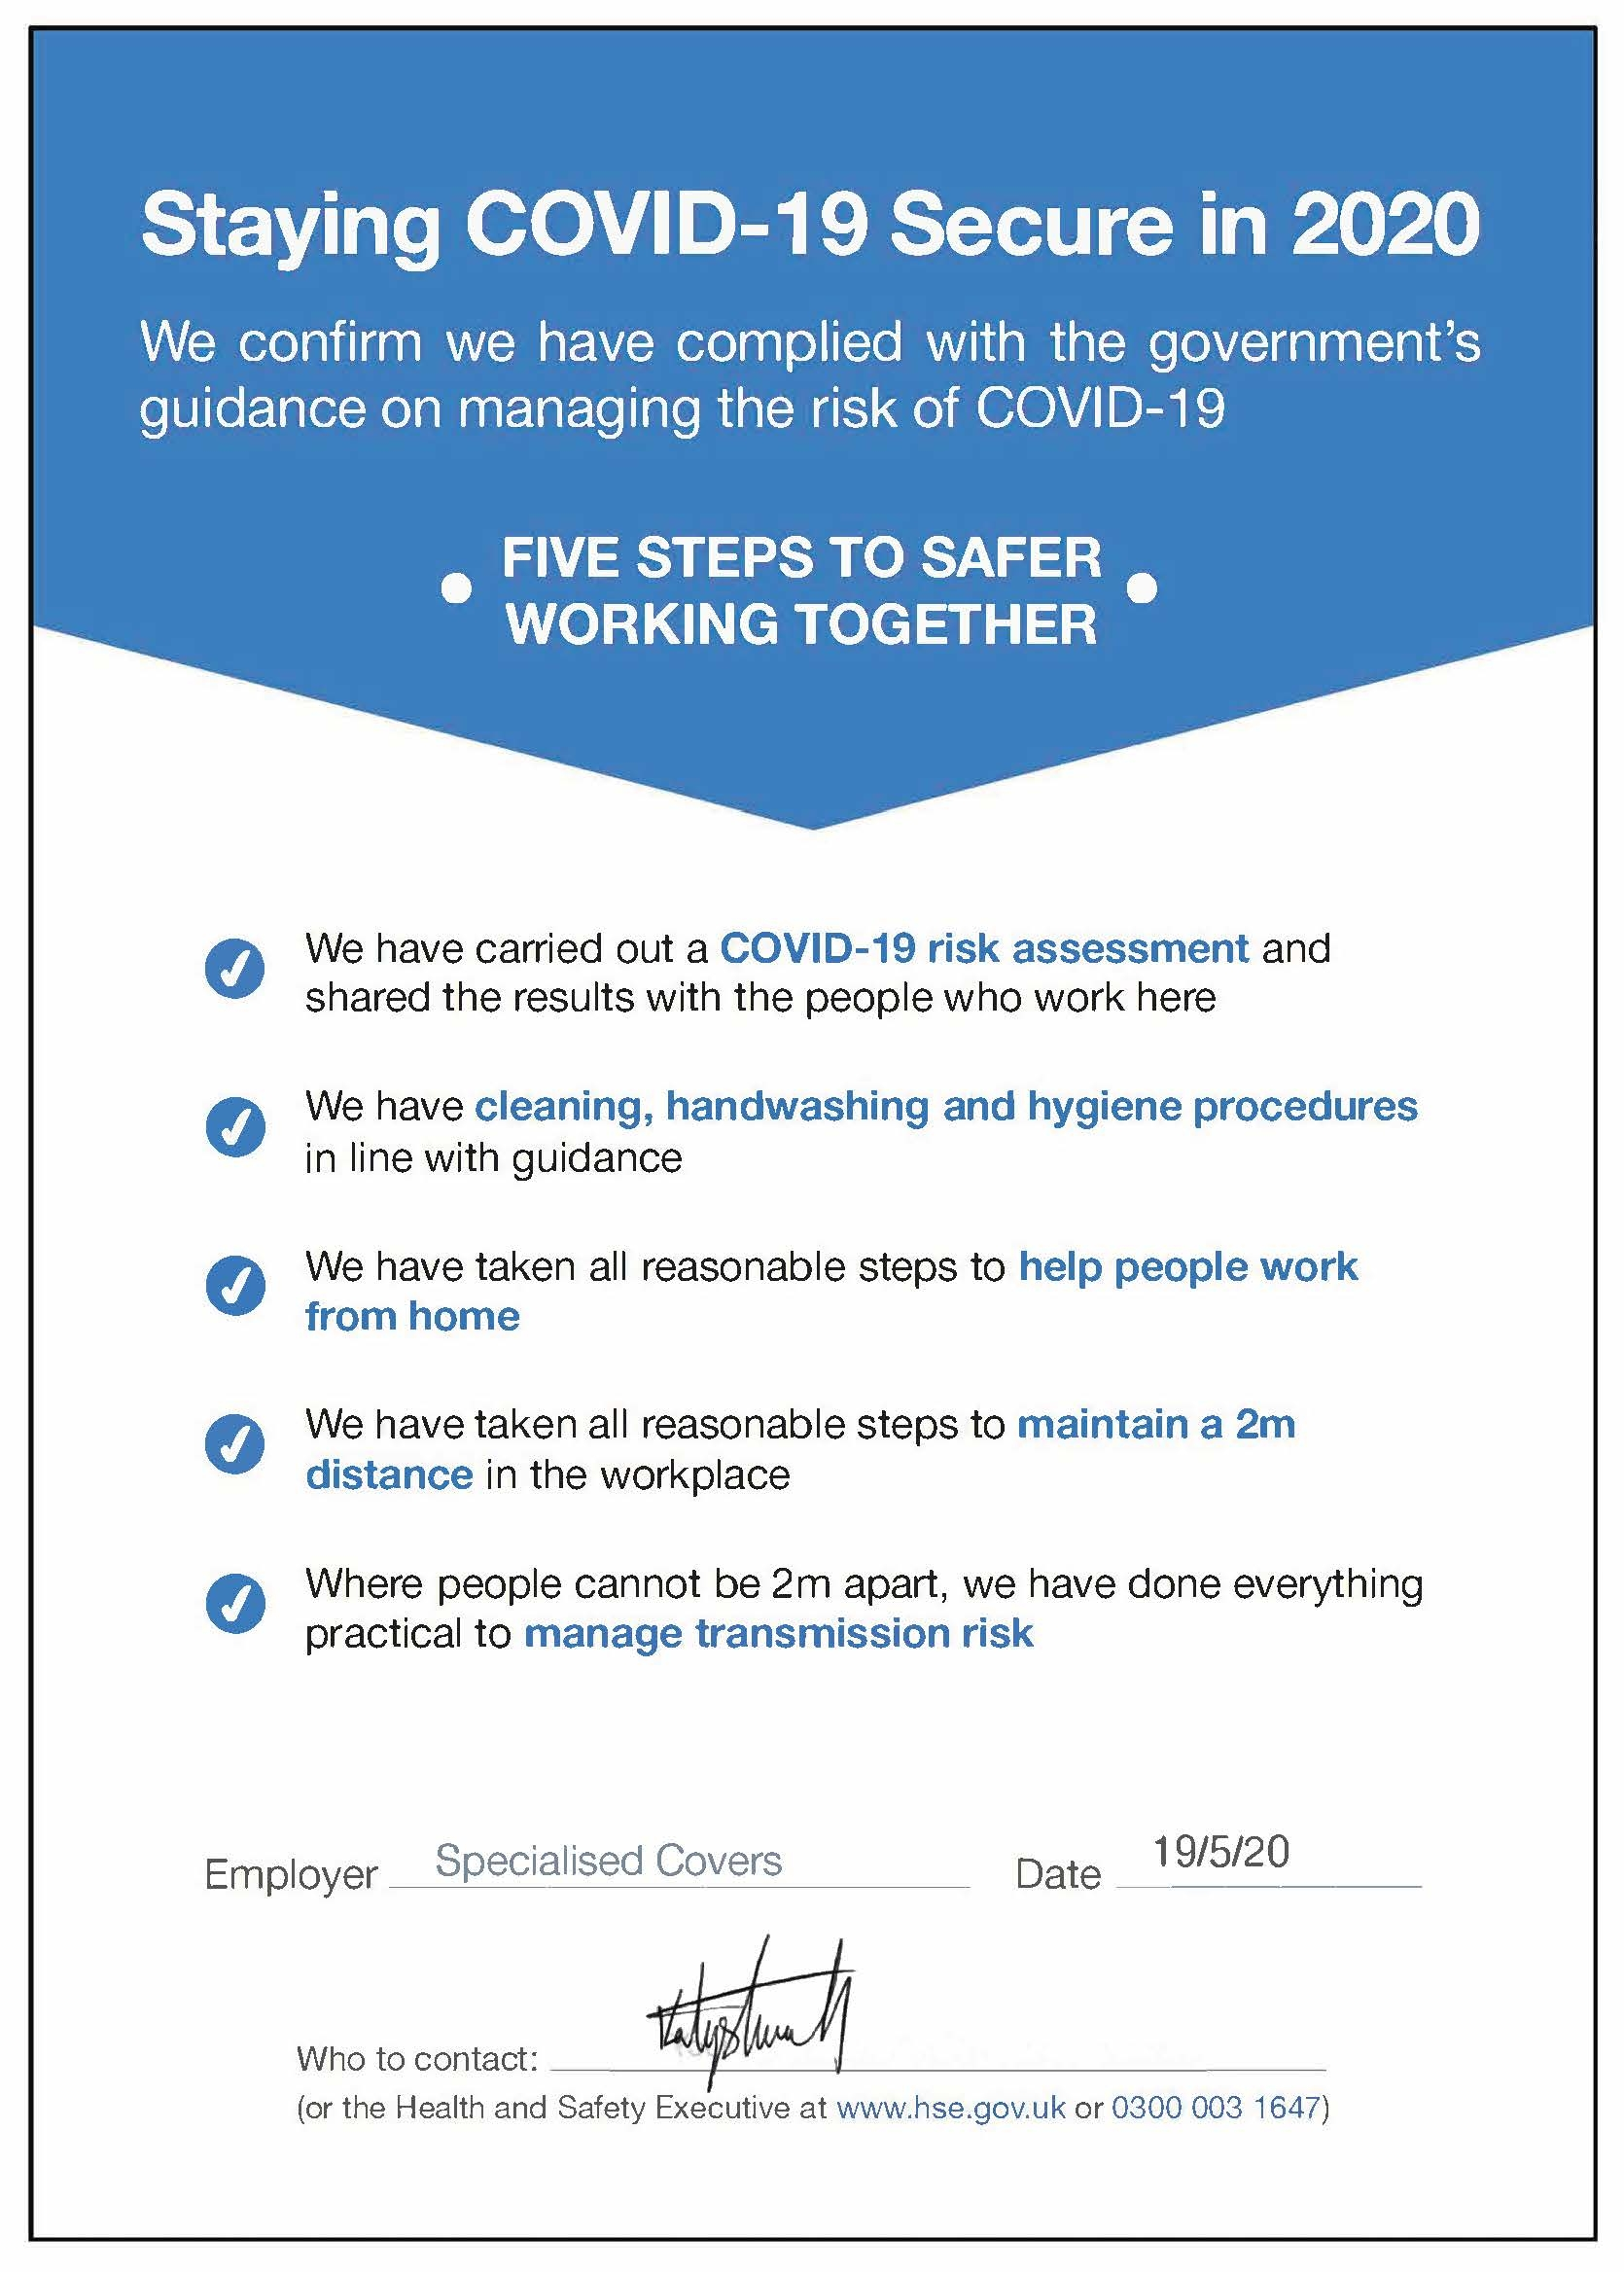 Staying Covid 19 Secure in 2020